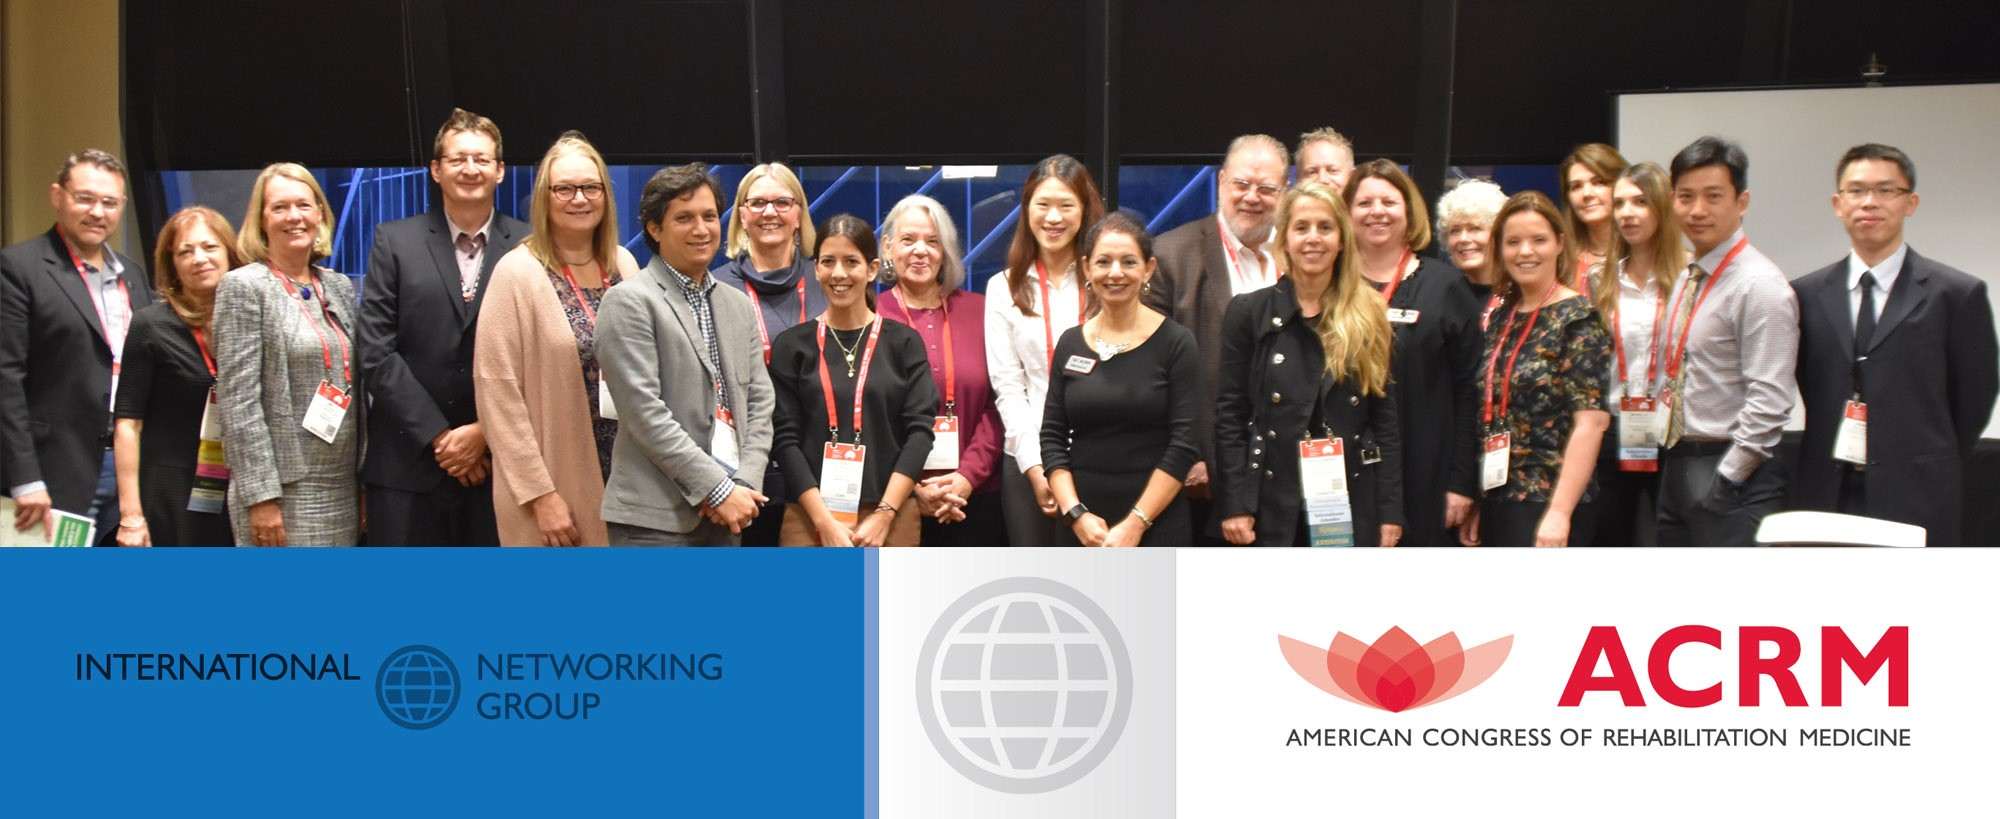 International Networking Group Members 2017 Annual Conference